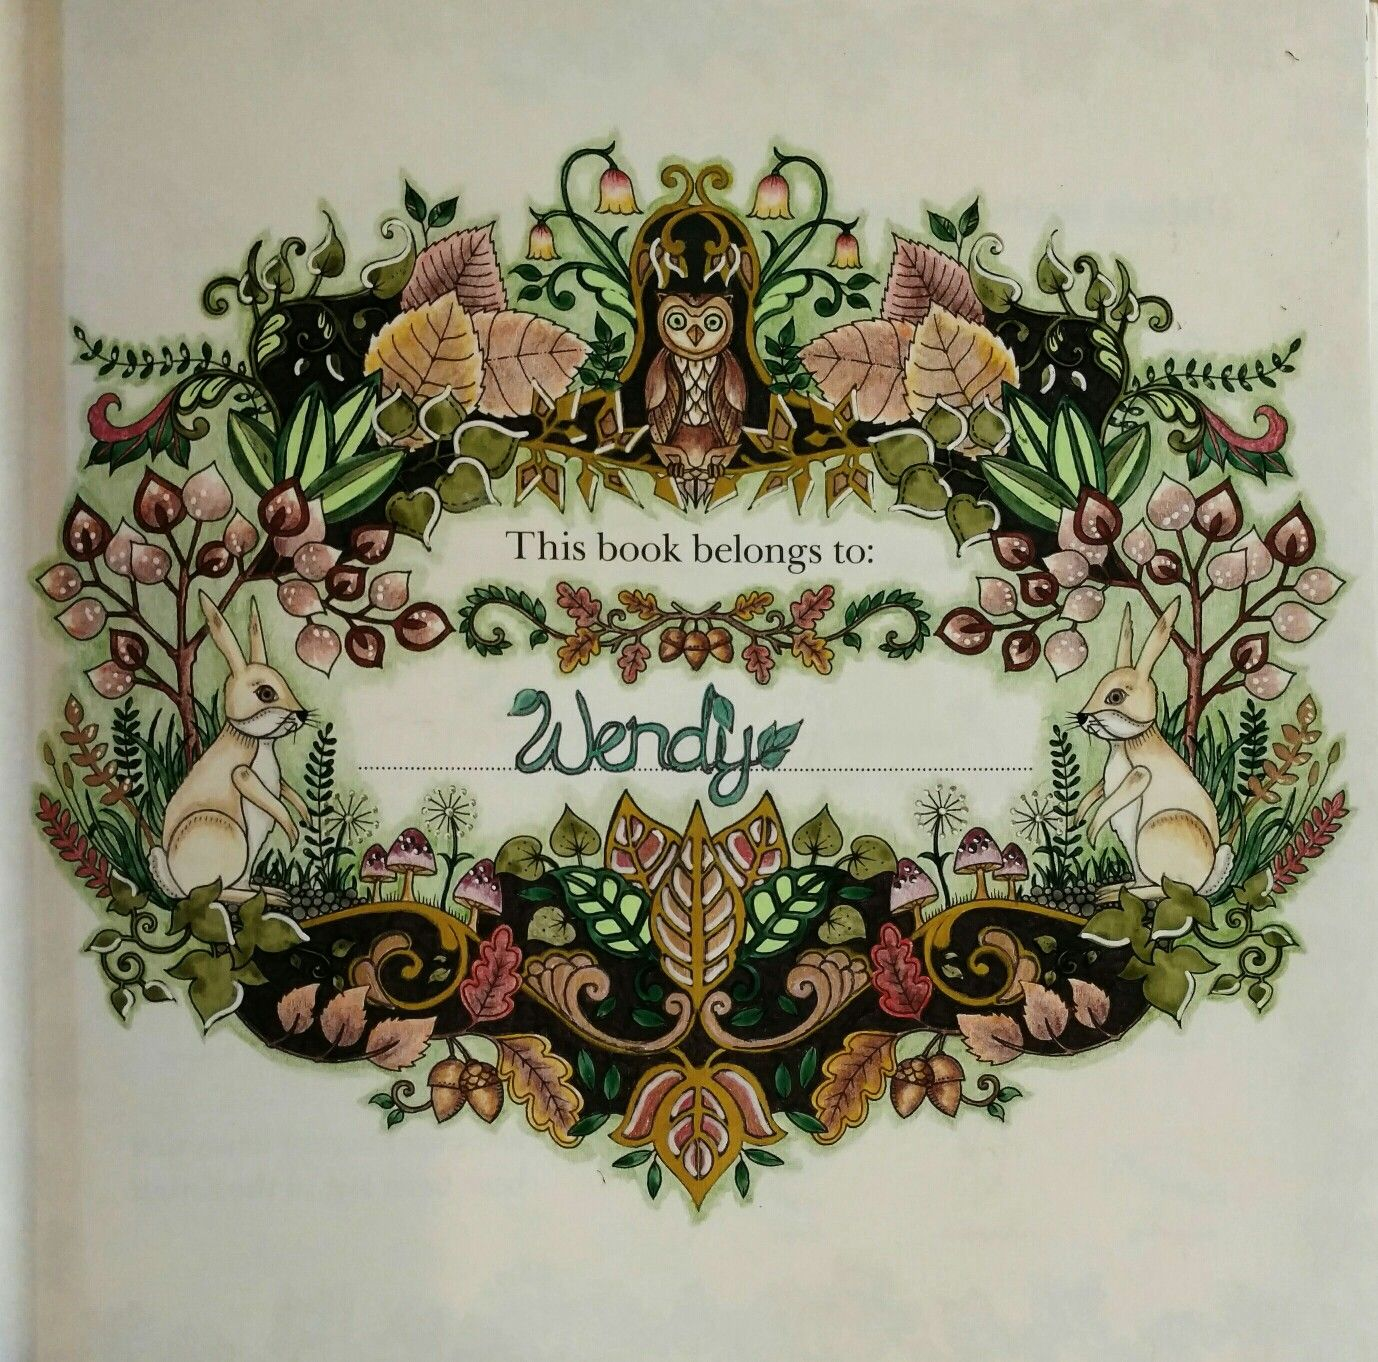 Enchanted Forest Johanna Basford Name Page By Wendy